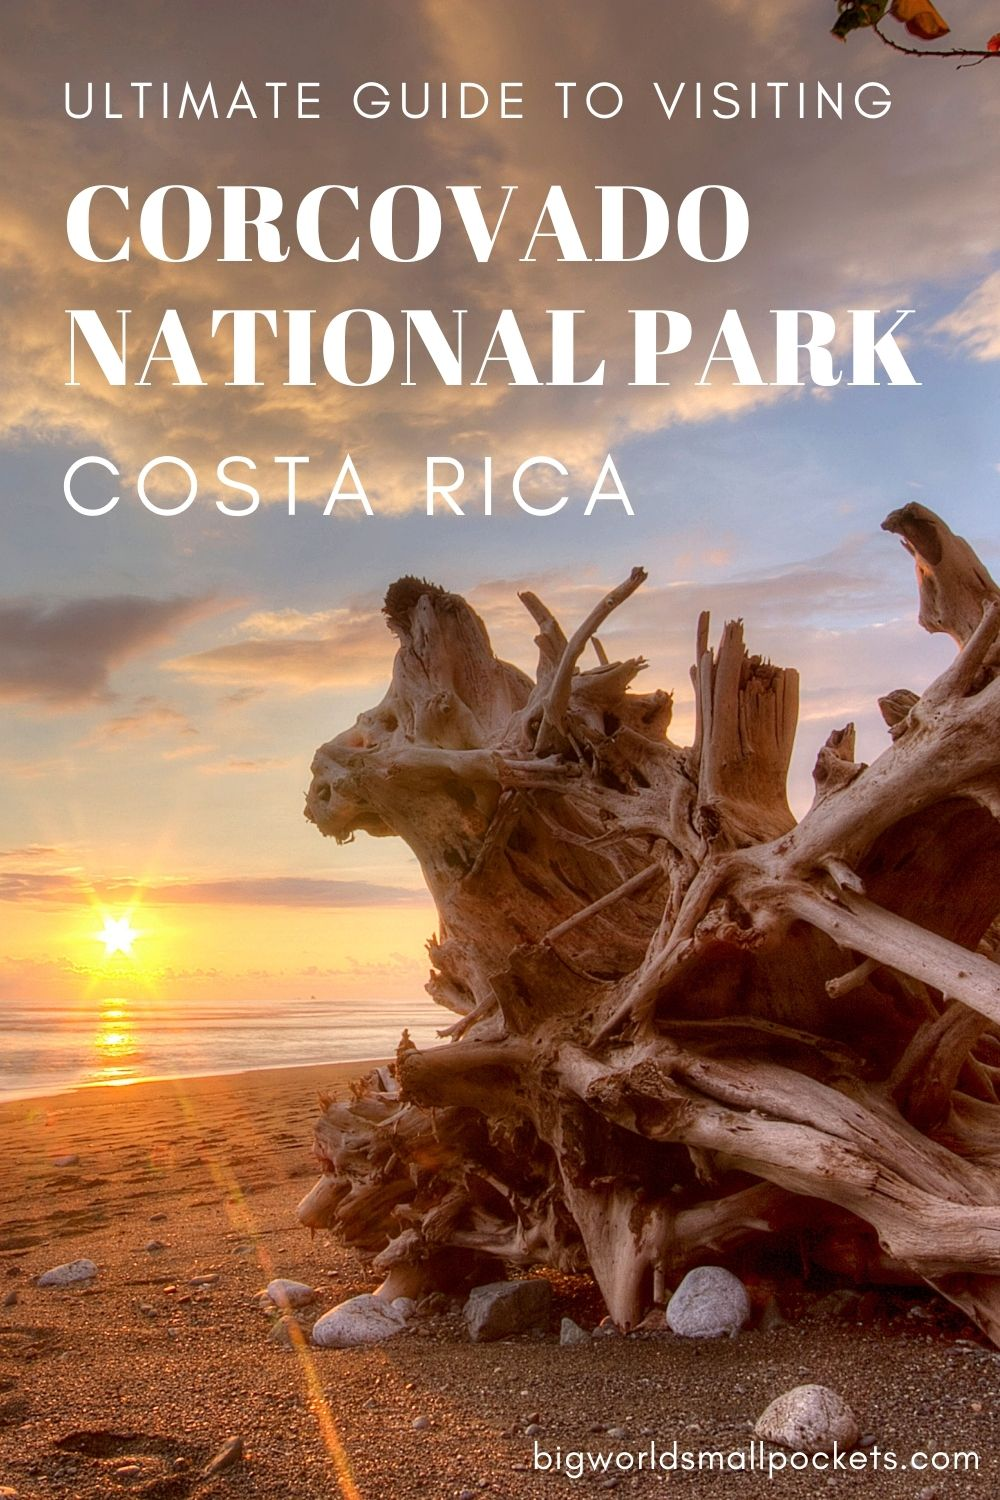 The Ultimate Guide to Visiting Corcovado National Park, Costa Rica